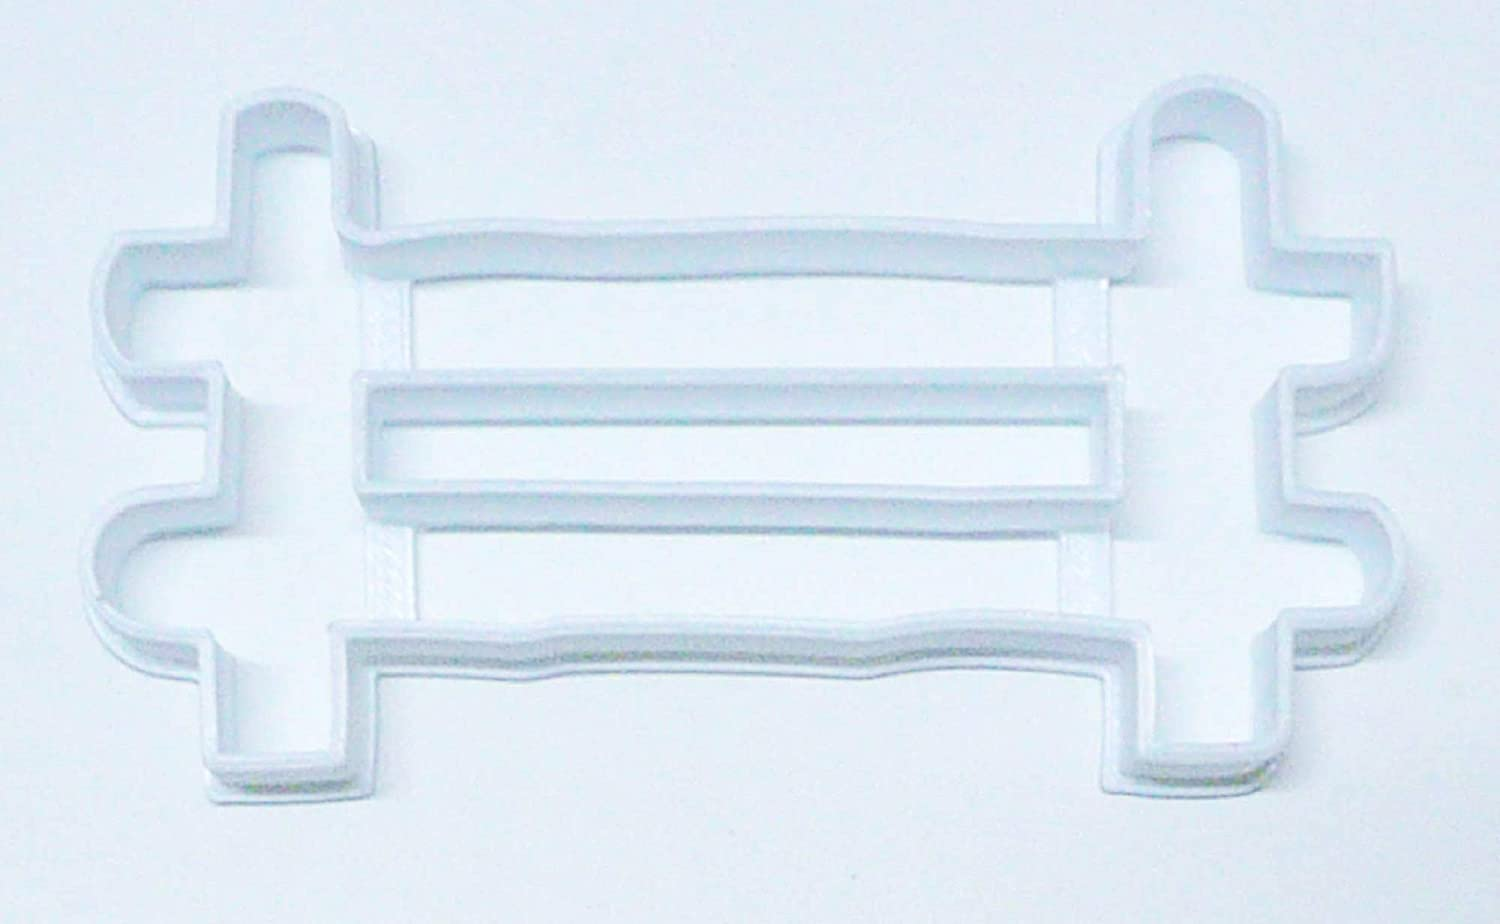 FENCE OUTLINE FENCING PANEL WOODEN PICKET GARDEN YARD HOME FARM SPECIAL OCCASION COOKIE CUTTER BAKING TOOL 3D PRINTED MADE IN USA PR2974